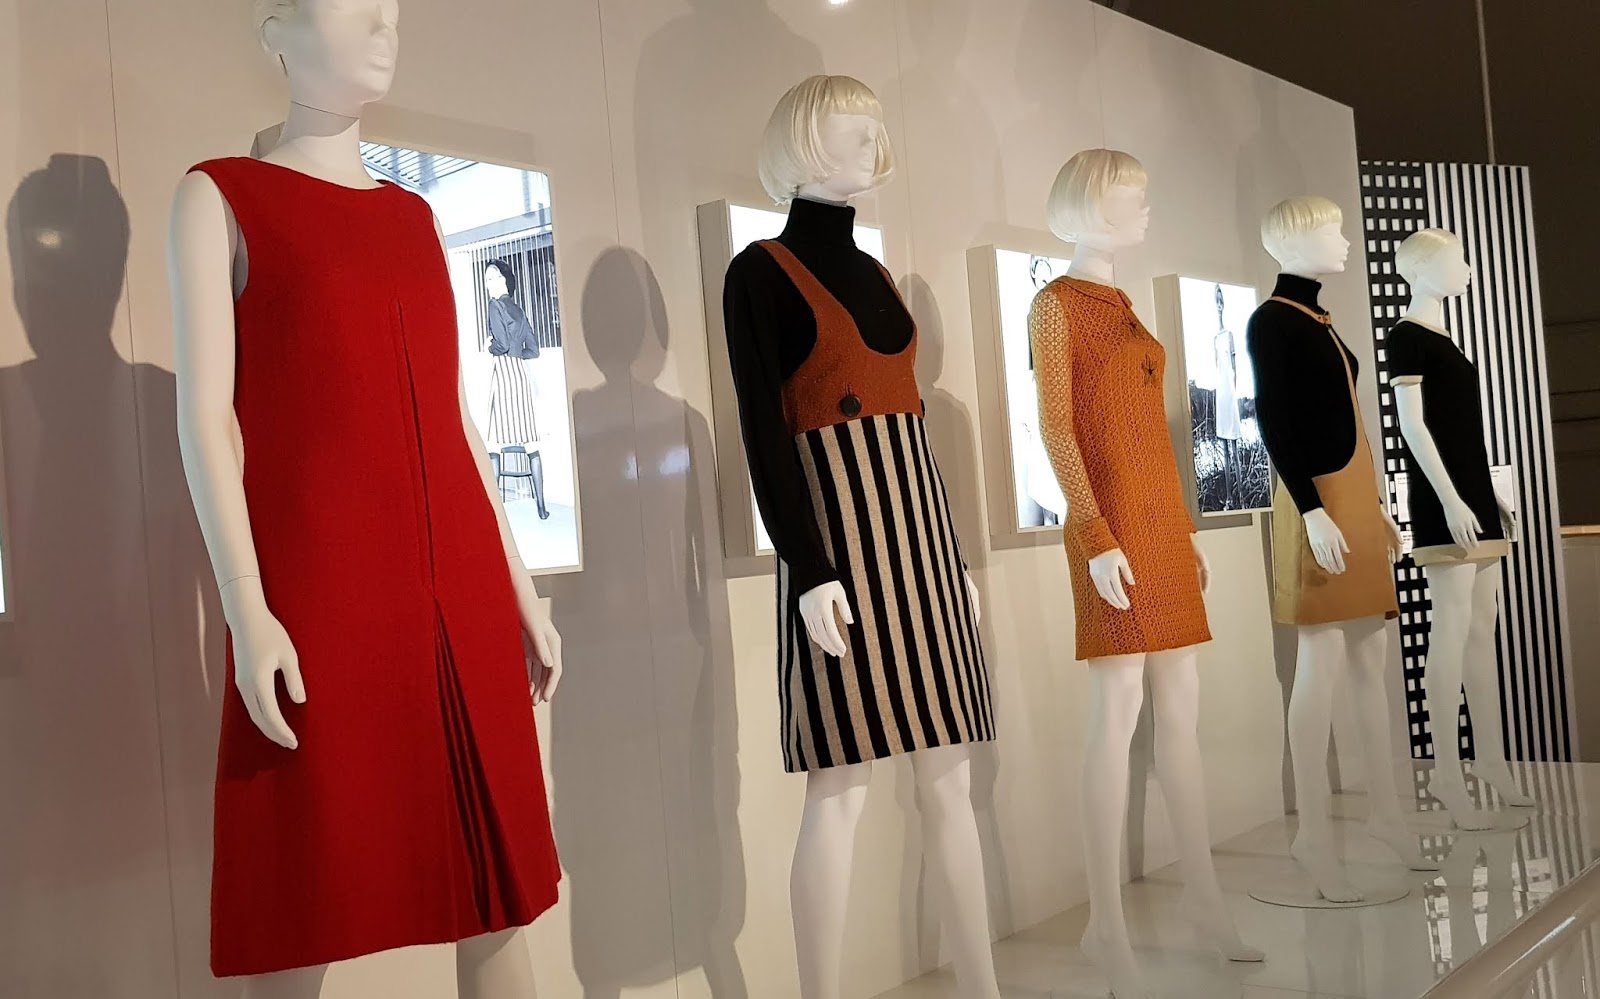 A selection of outfits from Mary Quant in the exhibition at the London V and A Museum